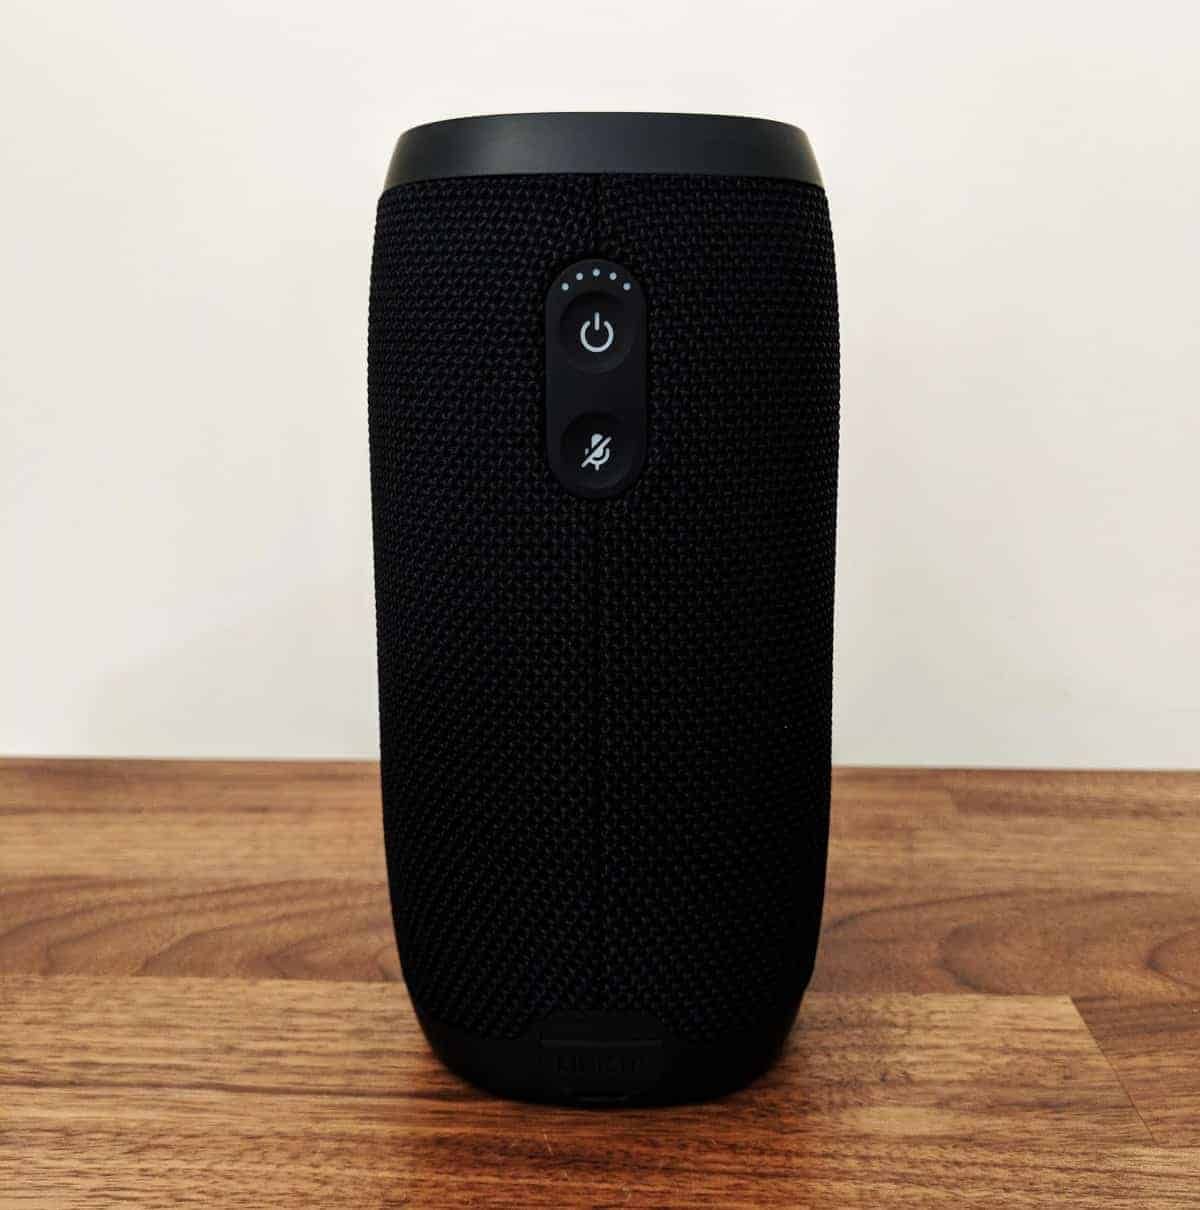 JBL Link 10 Voice-Activated Bluetooth Speaker Review - The